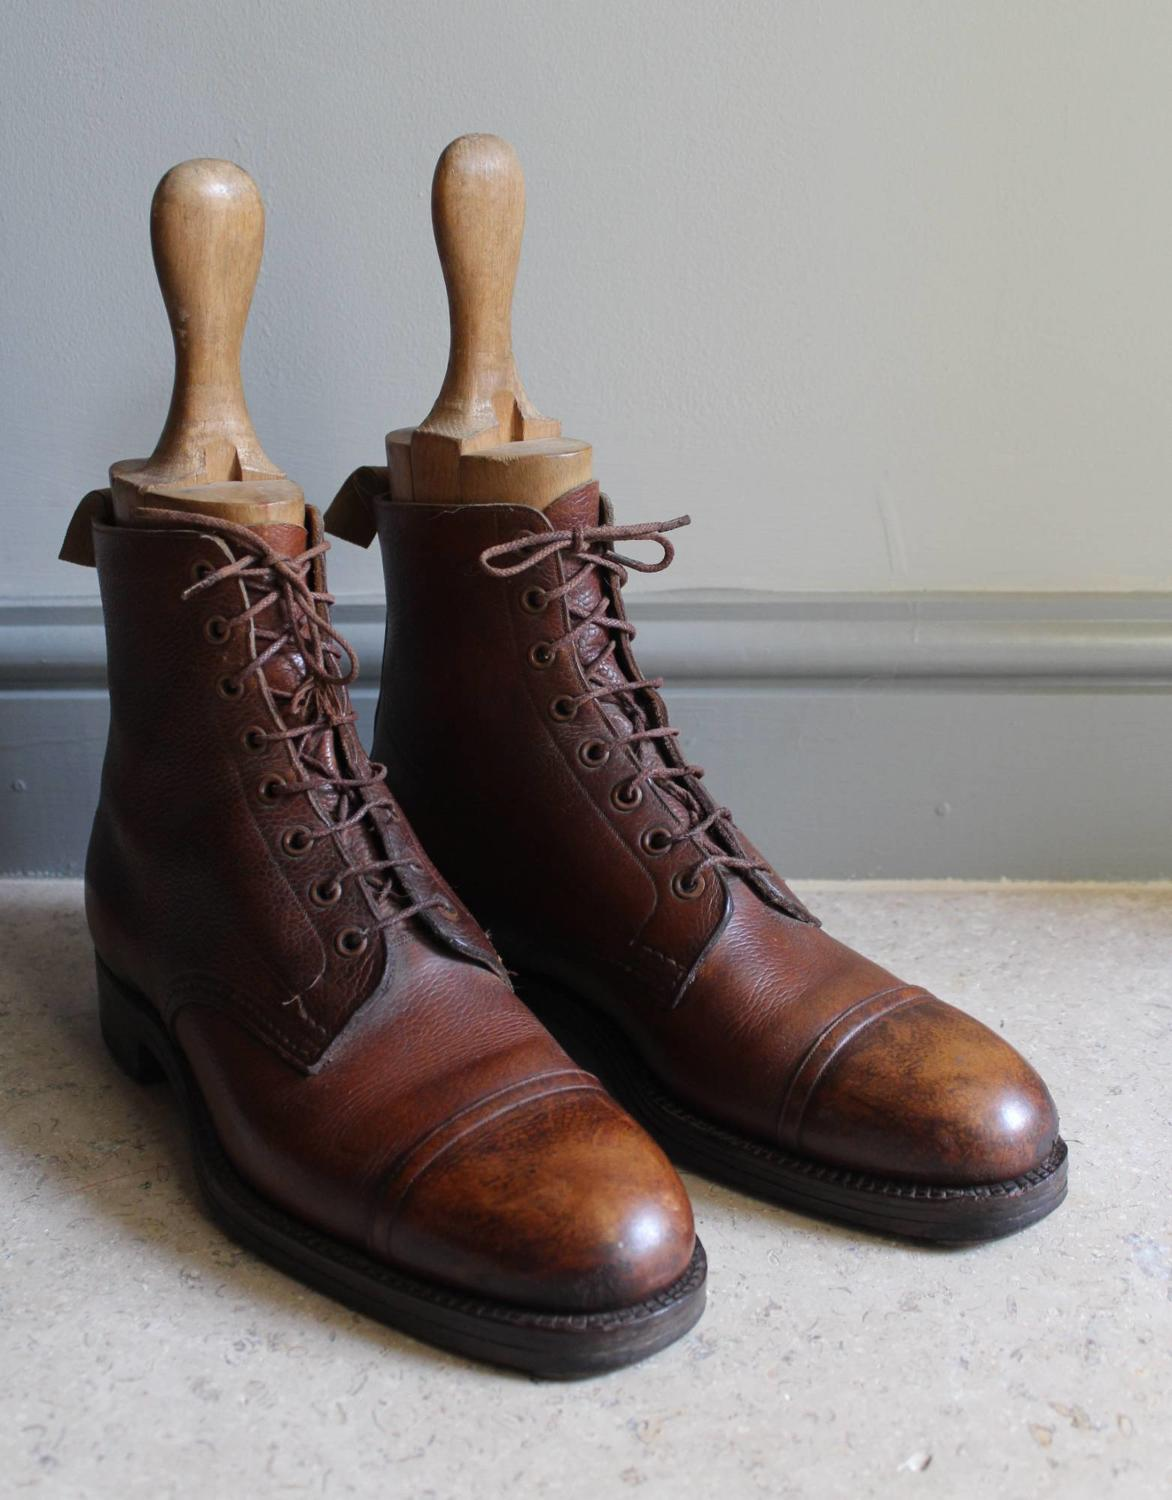 Pair of Vintage Leather Army Officer's Field Boots